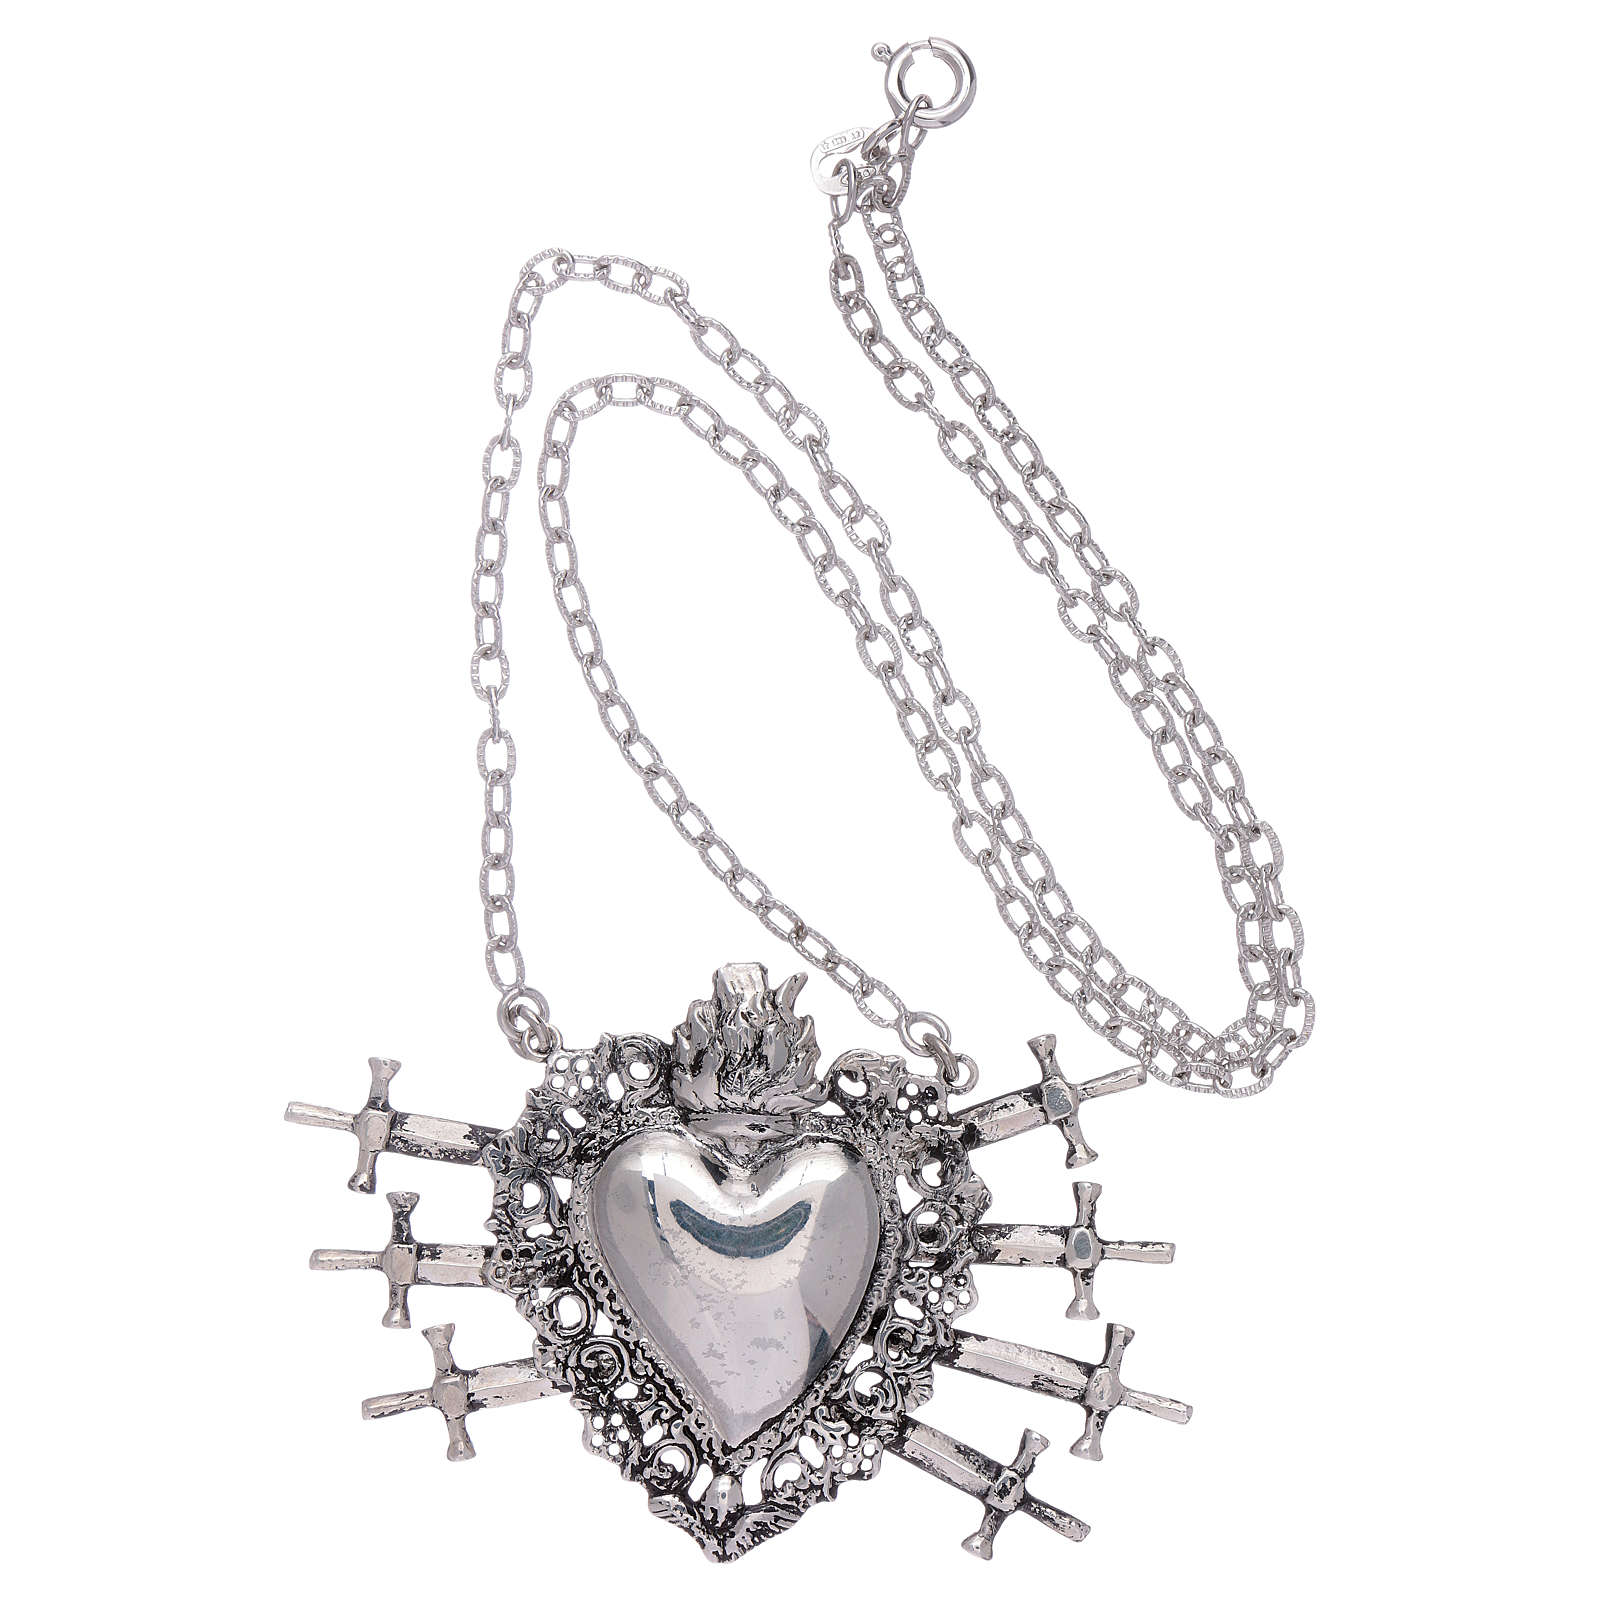 Choker in 925 sterling silver with votive heart and seven swords drilled 4